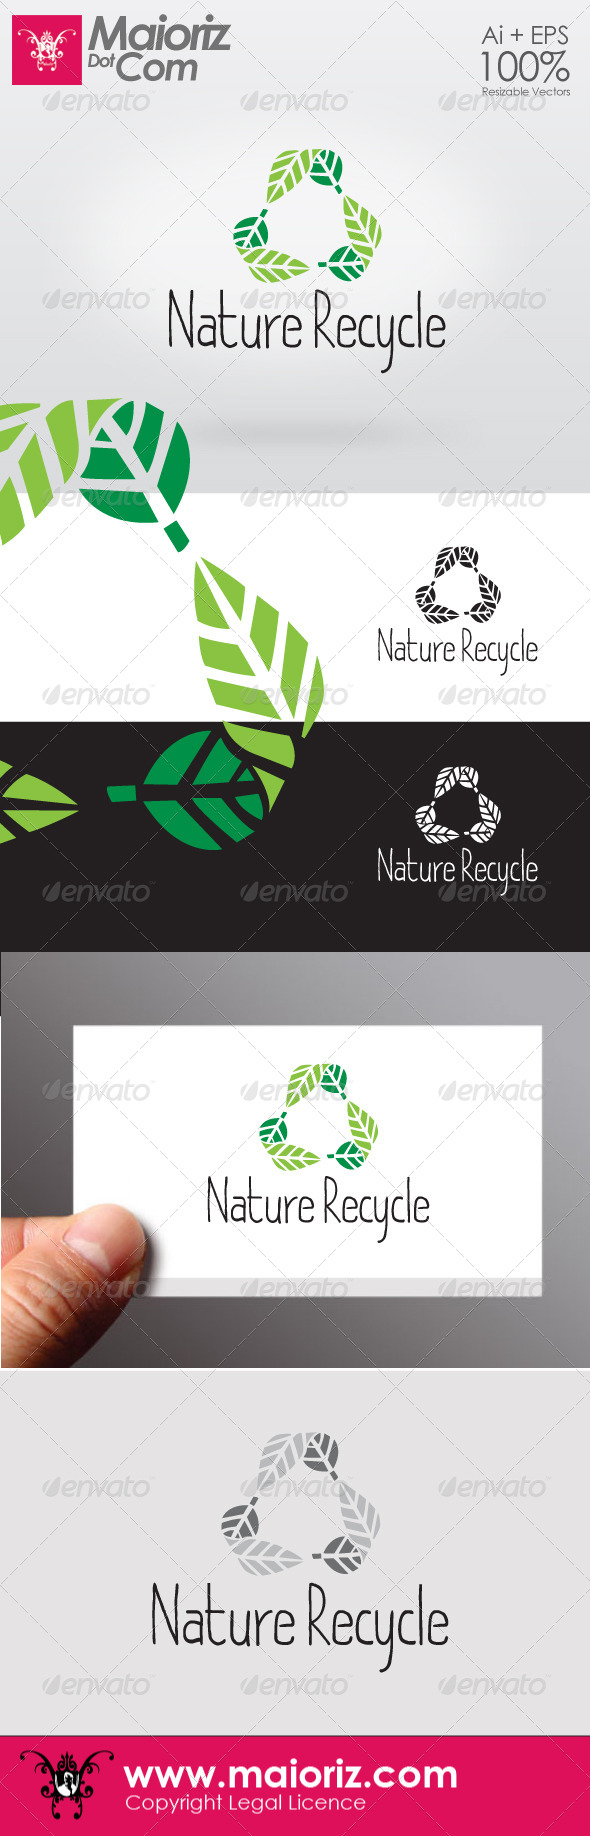 GraphicRiver Nature Recycle Logotype 6515416